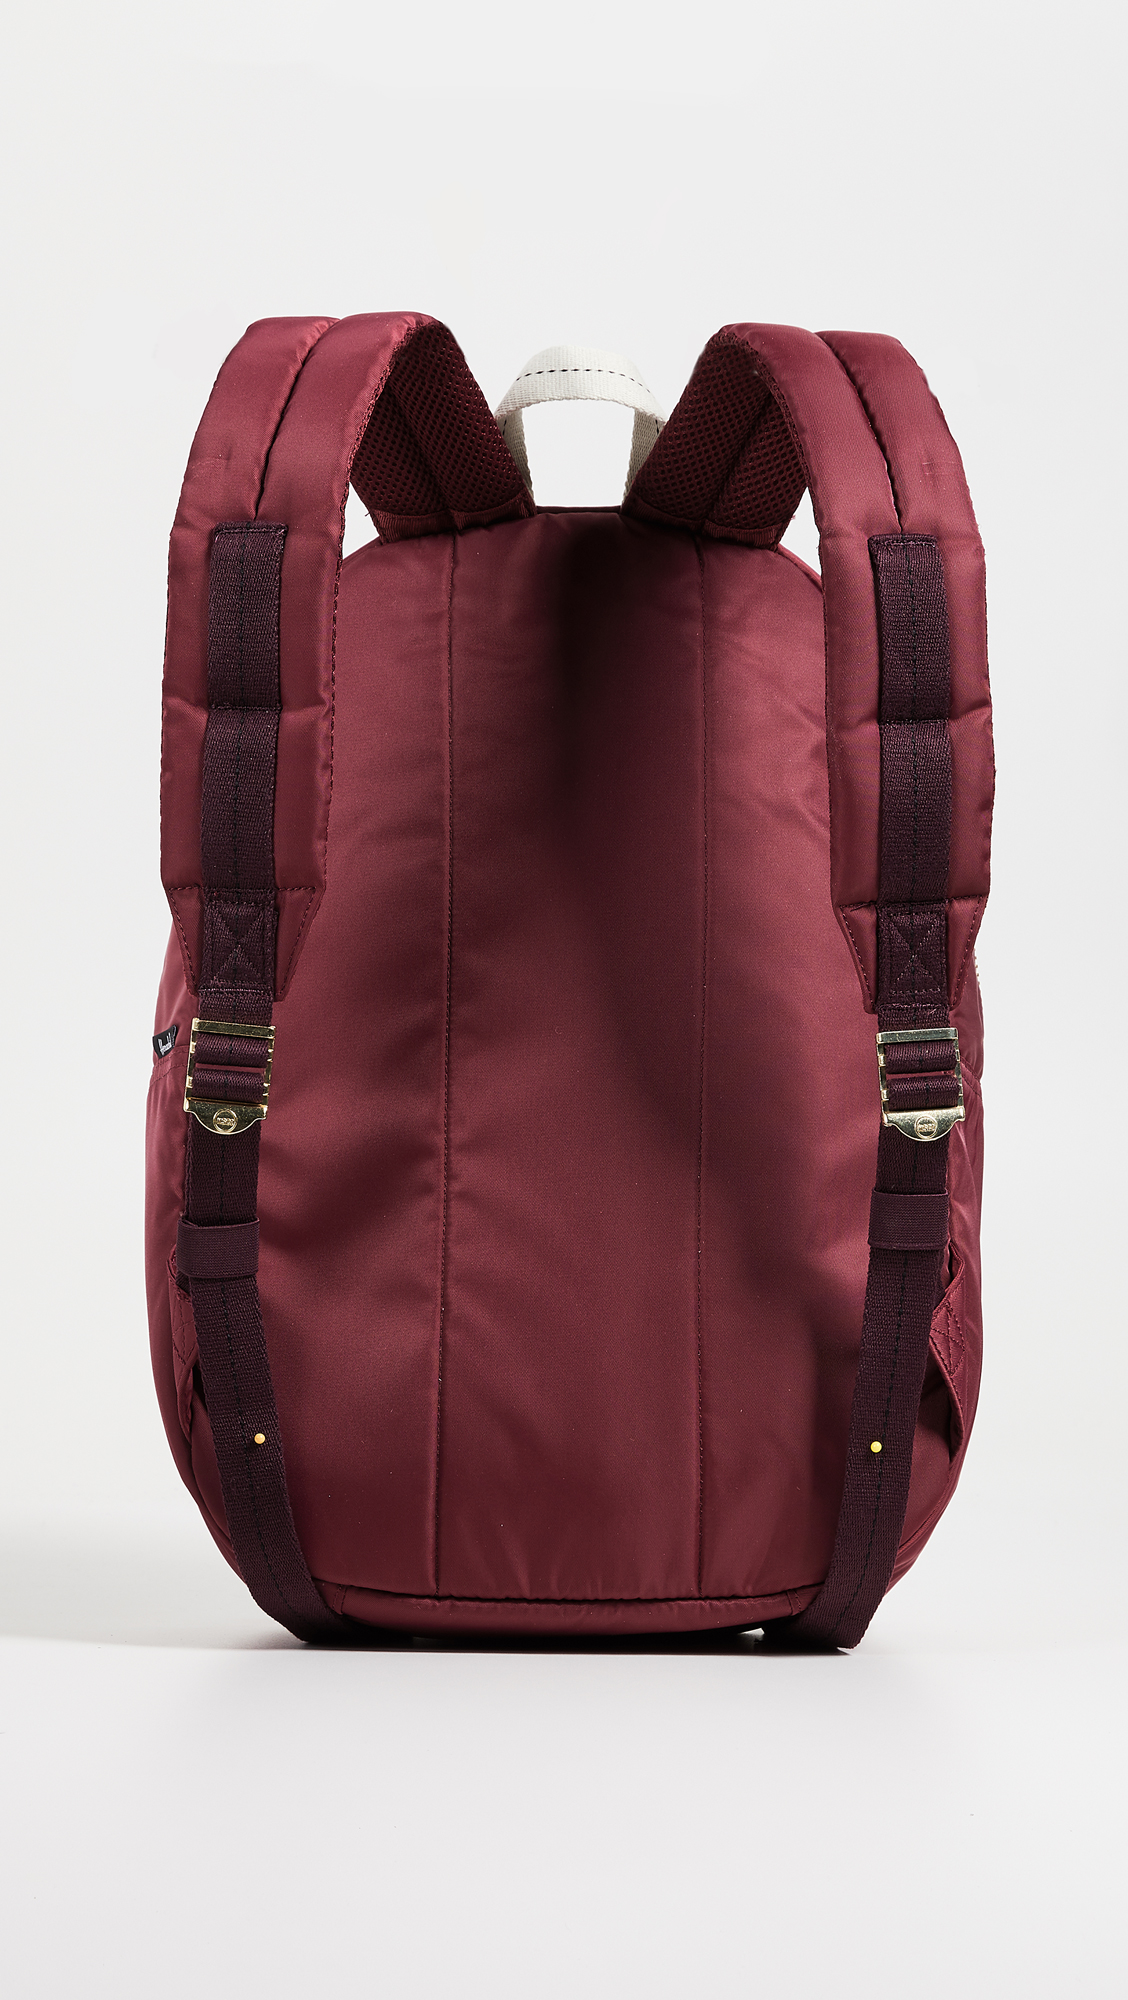 634f84a60aa Herschel Supply Co. Lawson Backpack